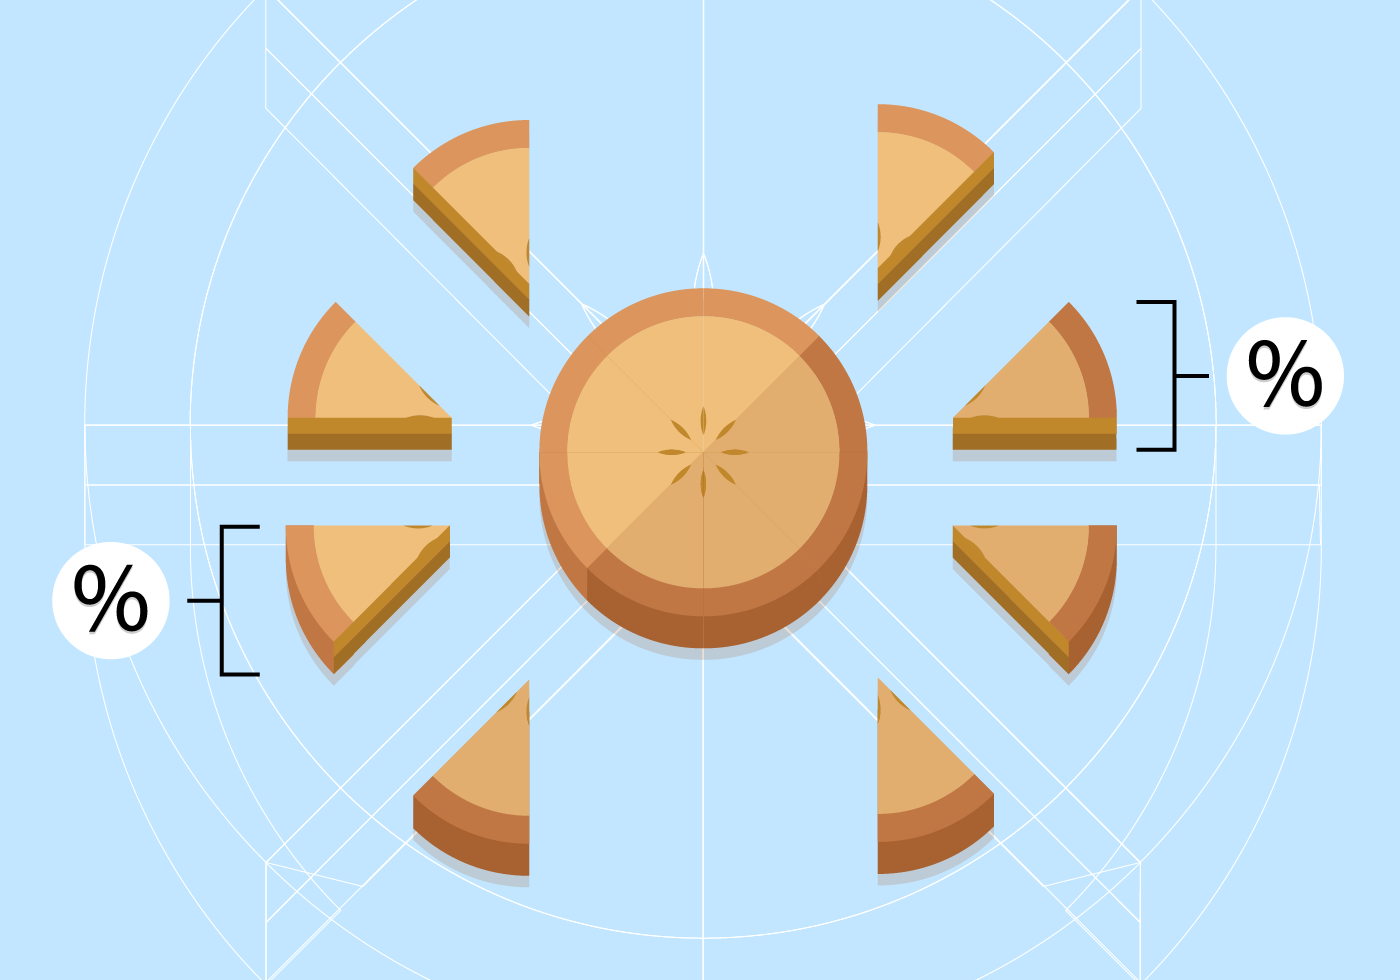 Apple pie pieces chart vector download free vector art stock apple pie pieces chart vector download free vector art stock graphics images nvjuhfo Images